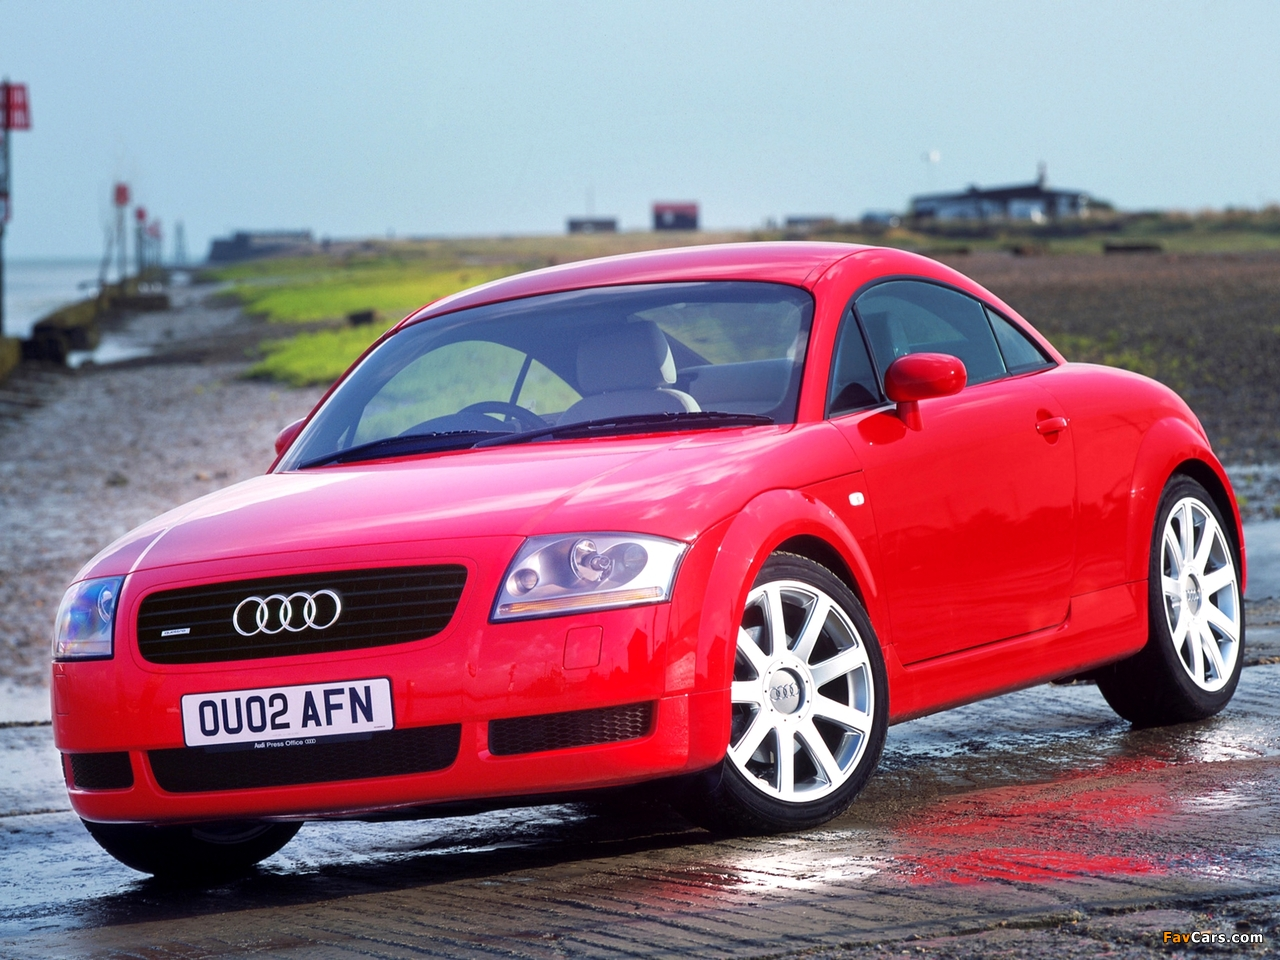 audi tt s line coupe limited edition uk spec 8n 2002. Black Bedroom Furniture Sets. Home Design Ideas